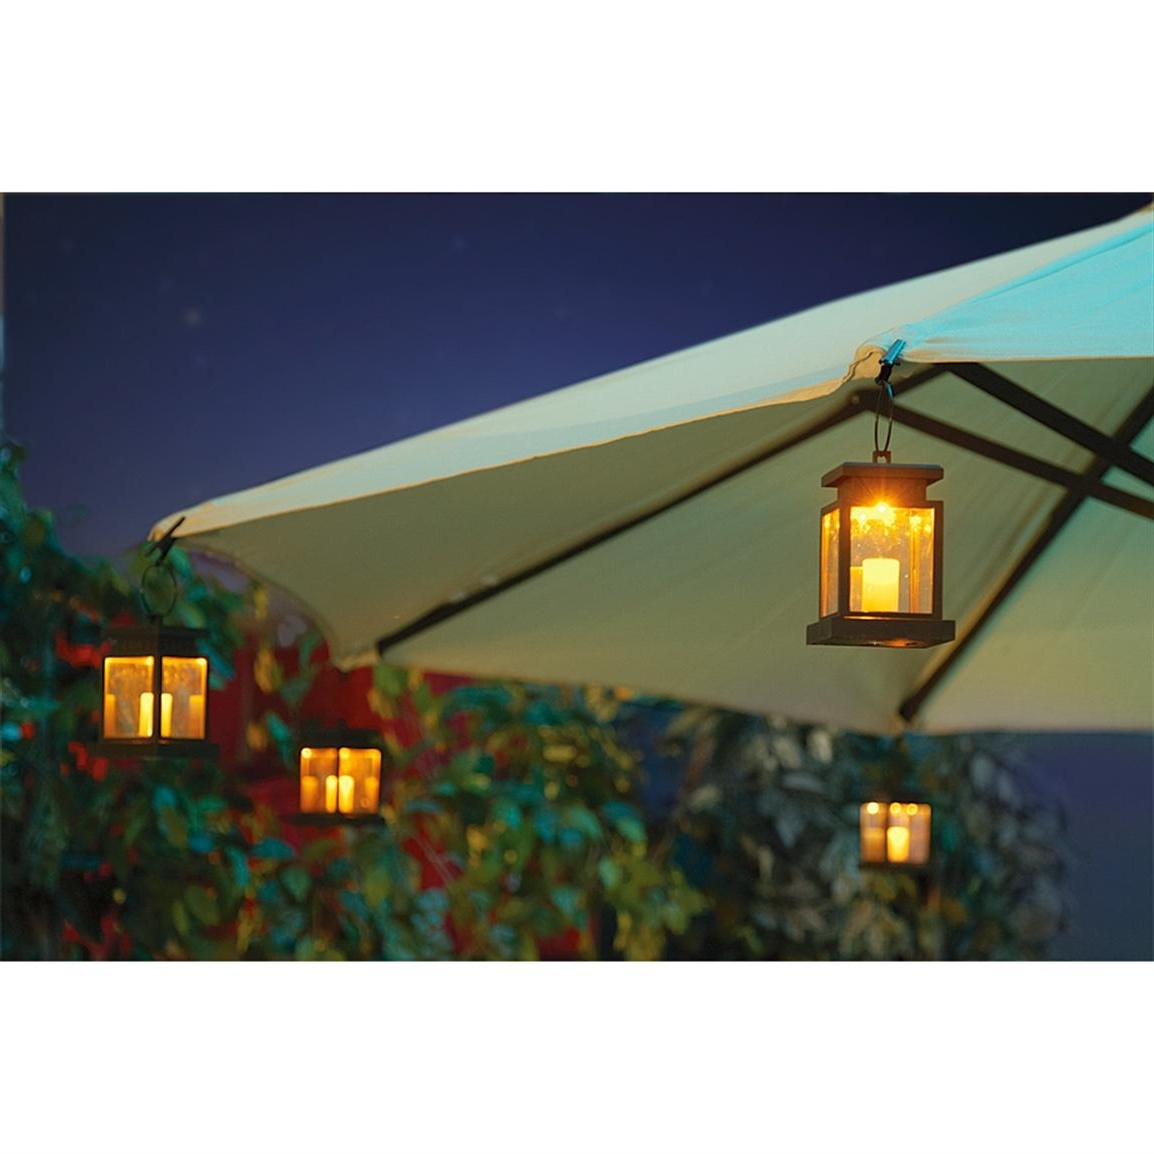 Patio Umbrellas With Lights Regarding Fashionable Outdoor Light : Extraordinary Patio Umbrella Lights Battery Operated (Gallery 9 of 20)